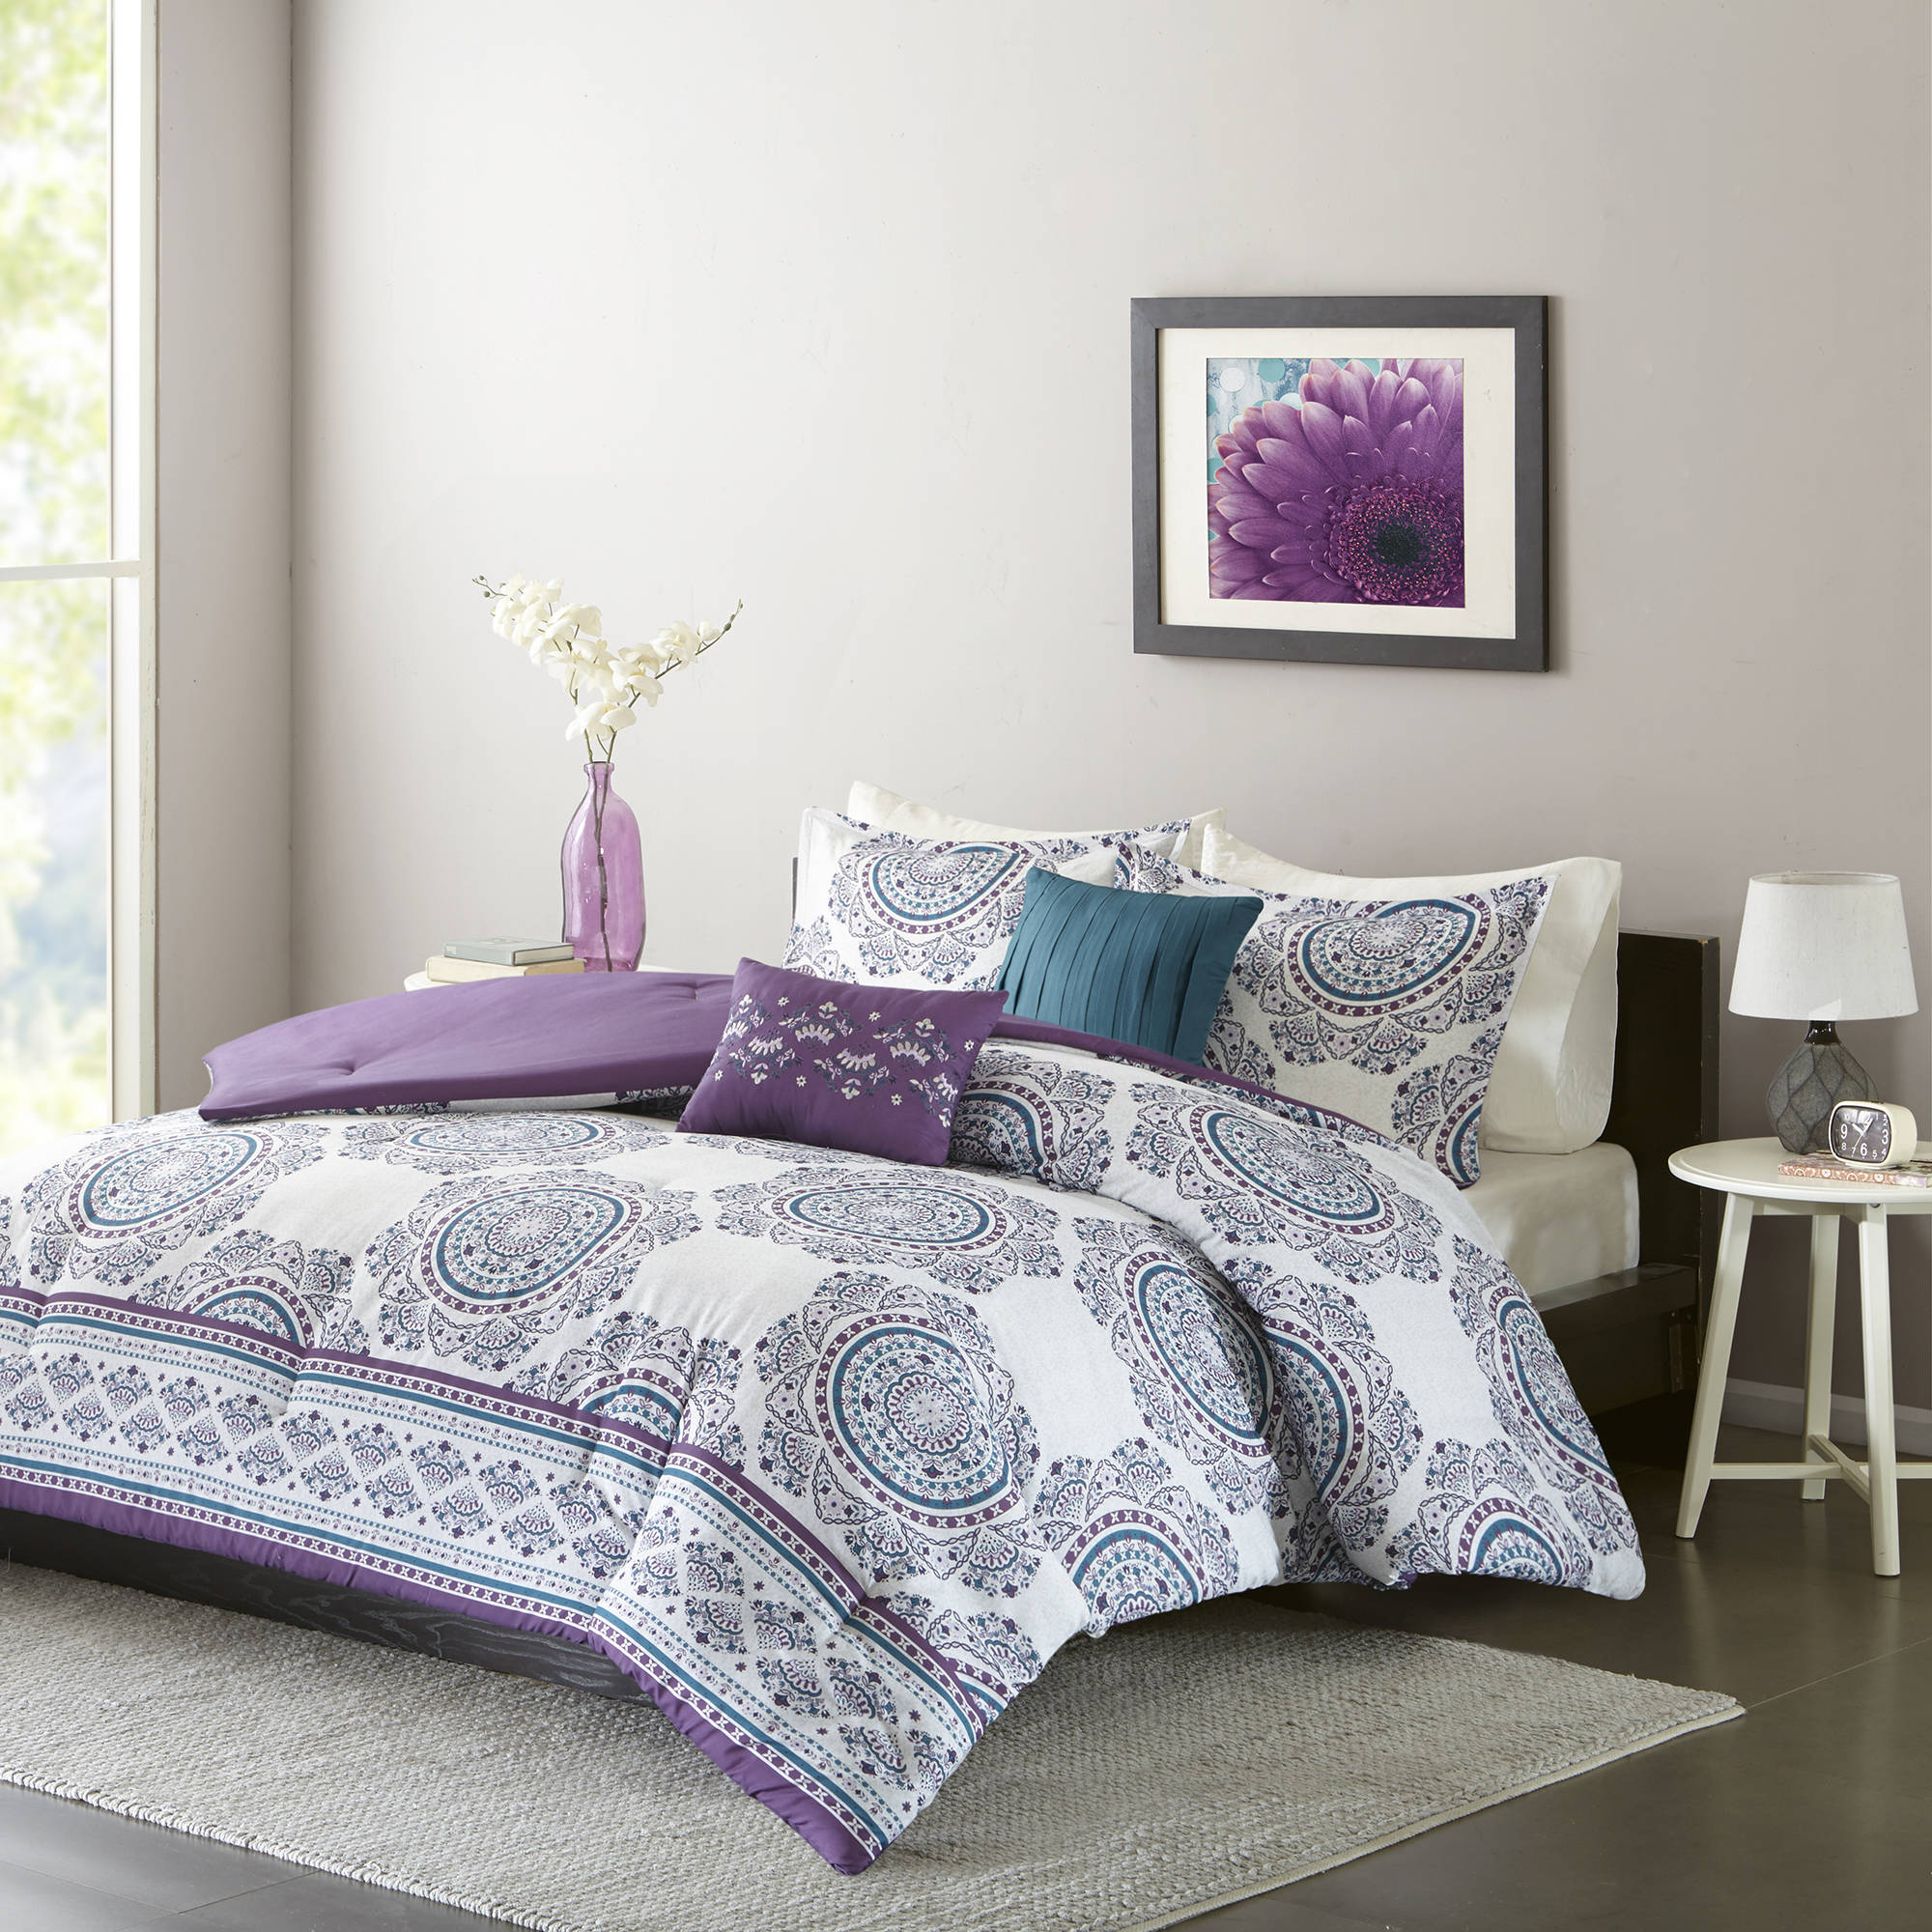 Home Essence Apartment Camryn Bedding Comforter Set